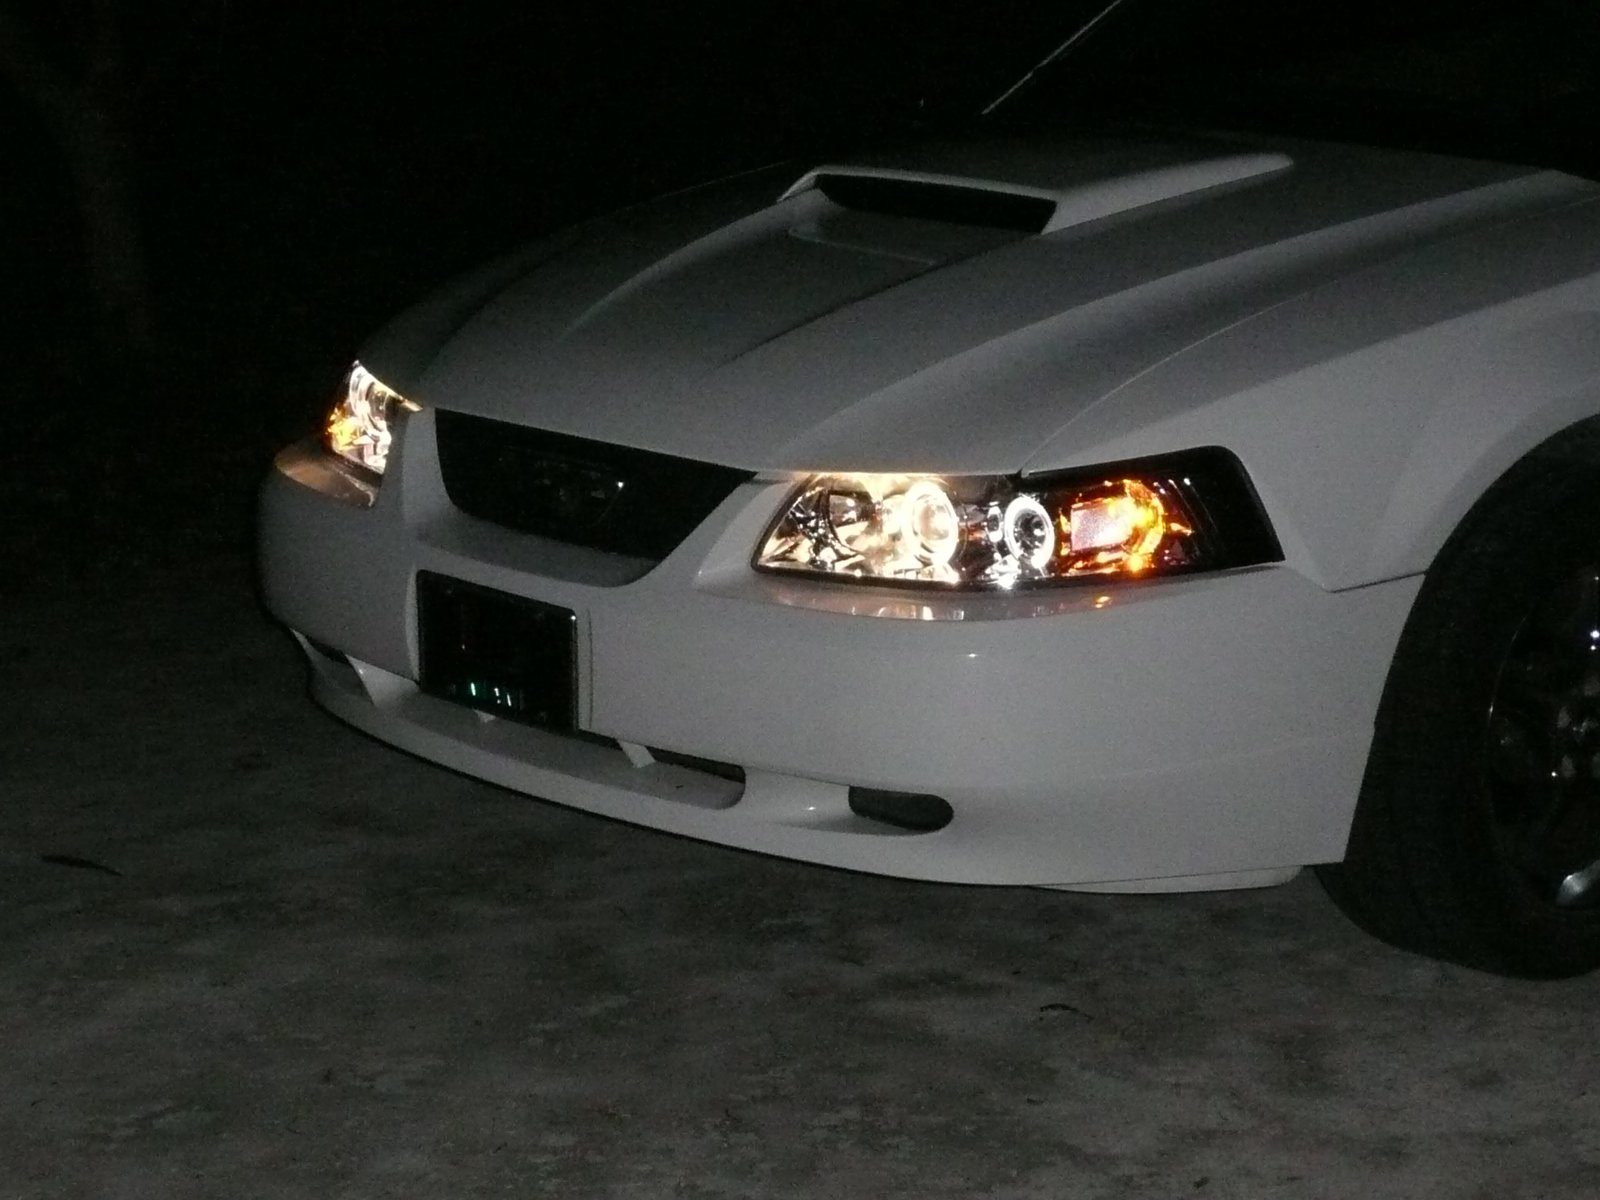 Late Model Mustang Halo Projector Headlight Installation